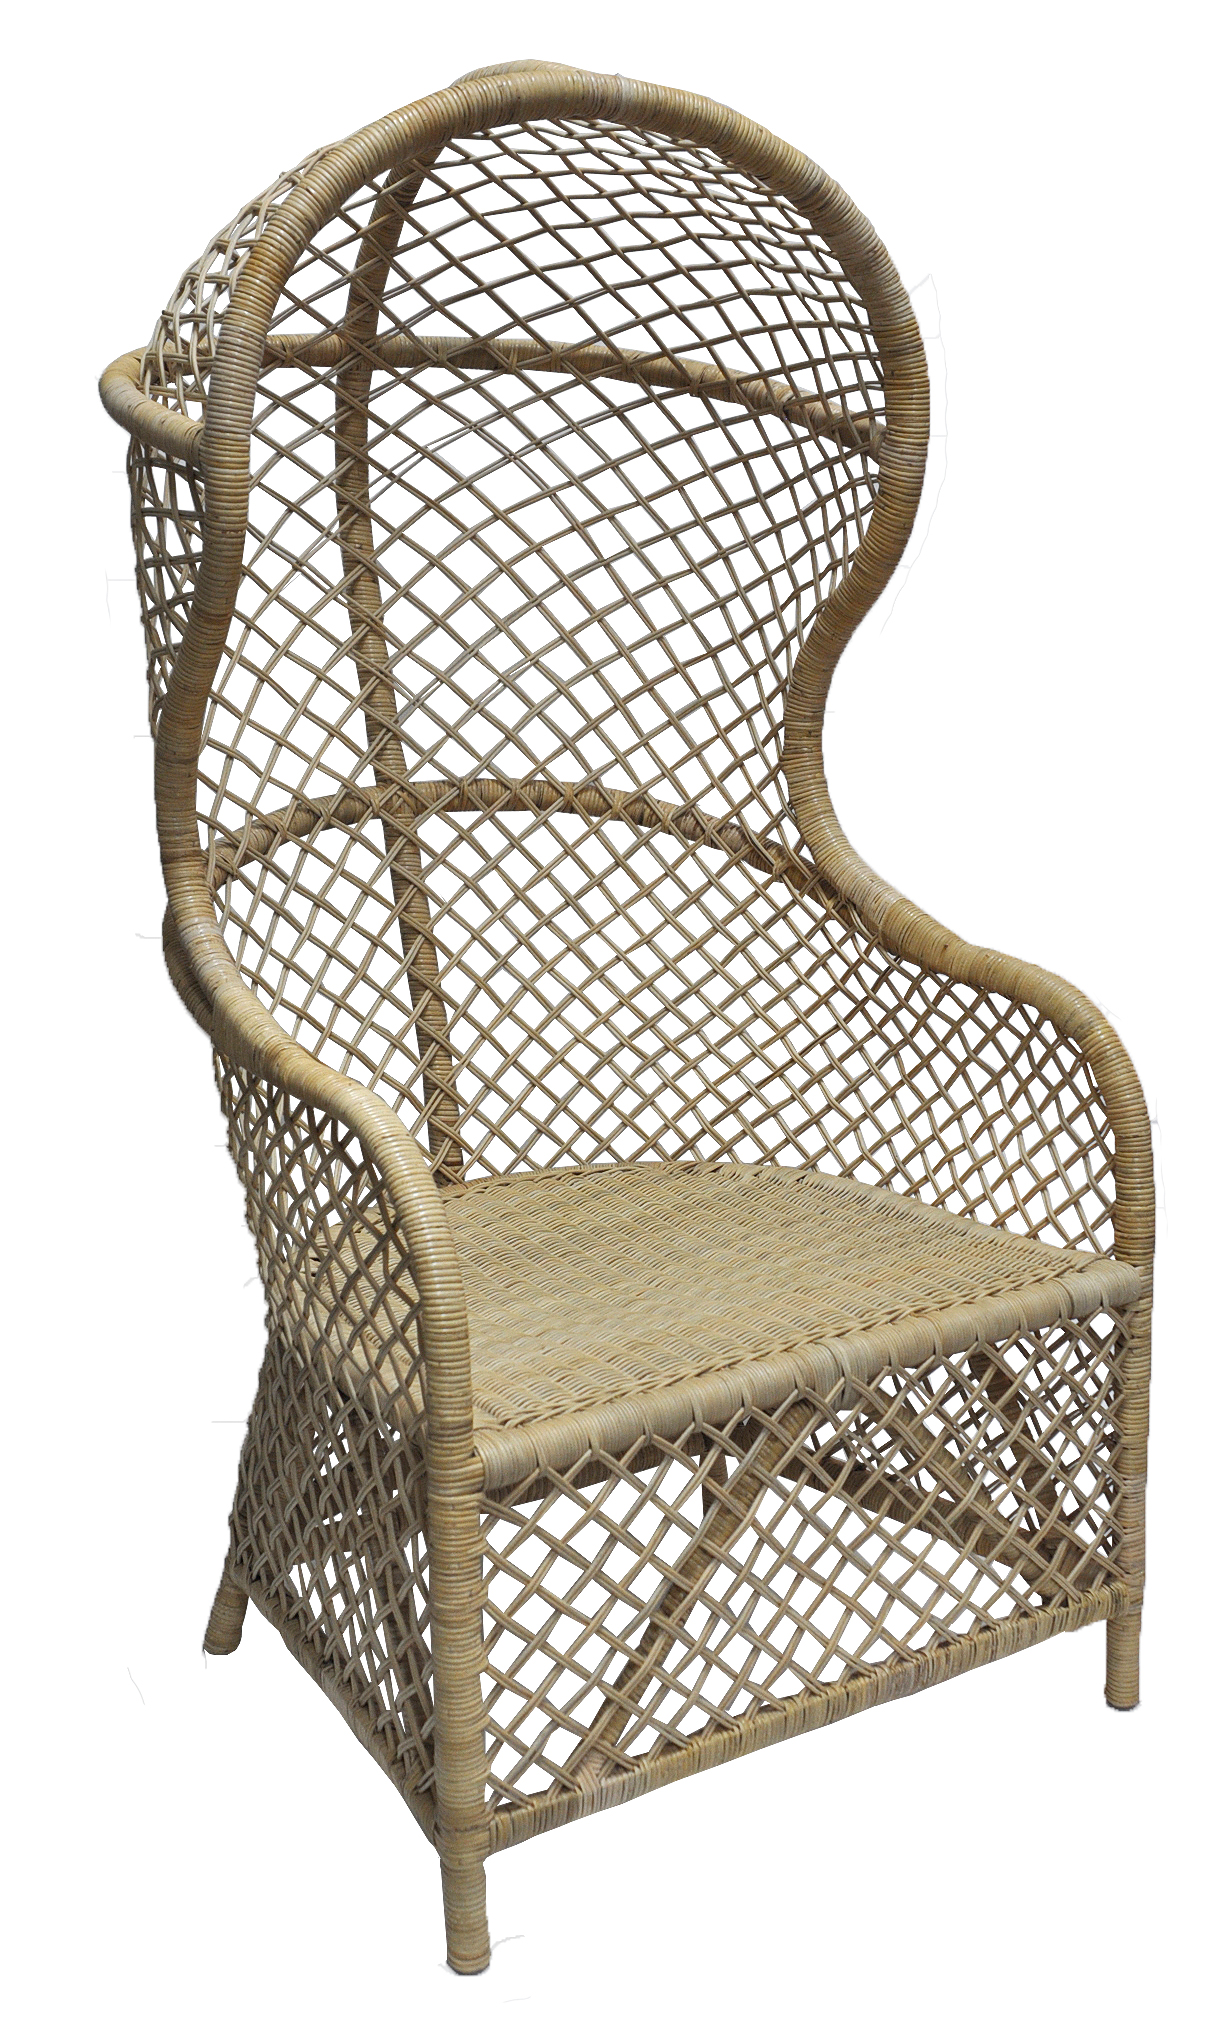 products fioravanti pedrali odoardo chair by for clippings dome